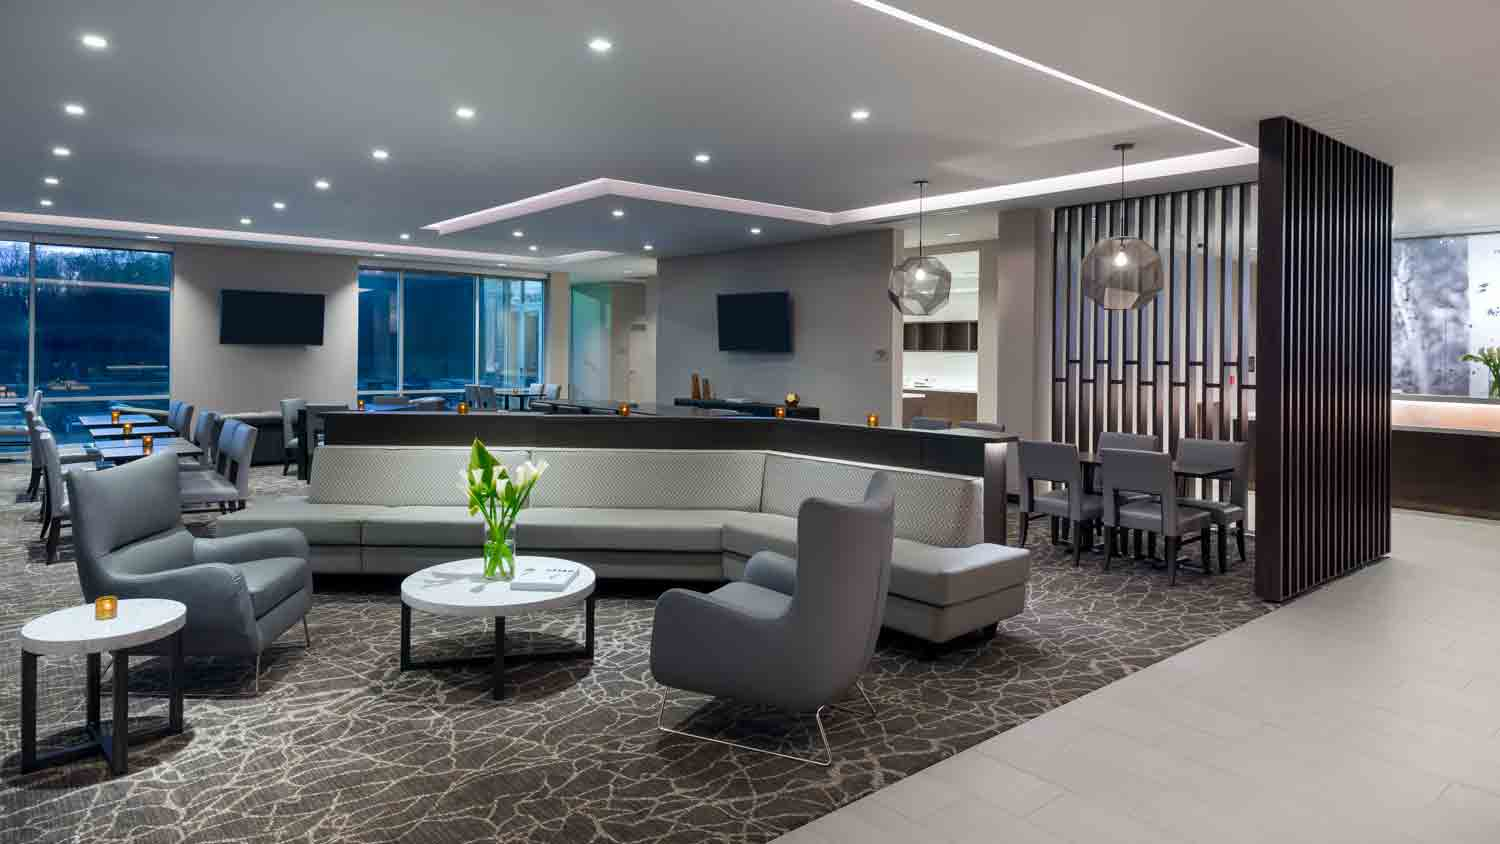 SpringHill Suites by Marriott Indianapolis-Westfield 1